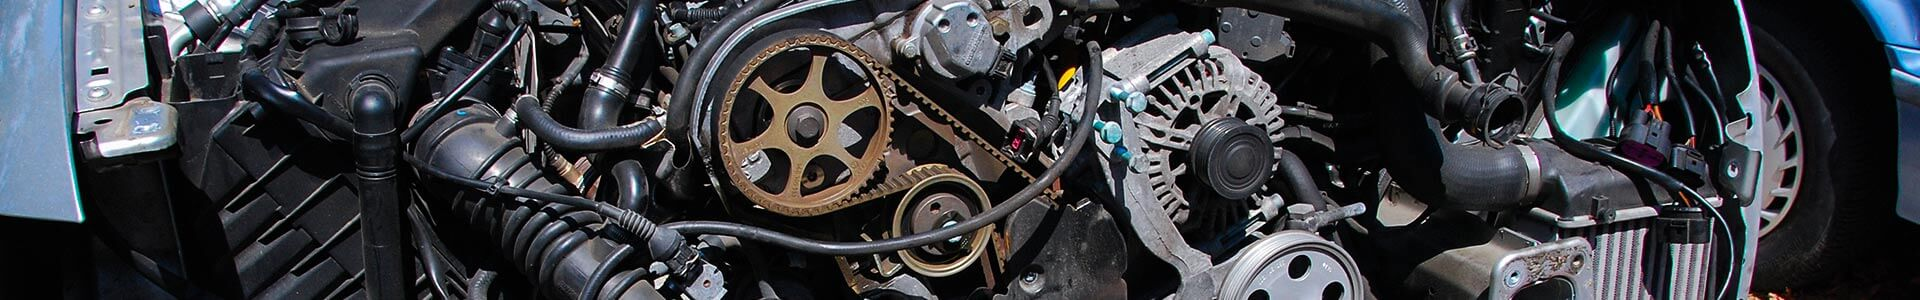 Timing Belt vs Timing Chain: what's the difference? | AutoGuru